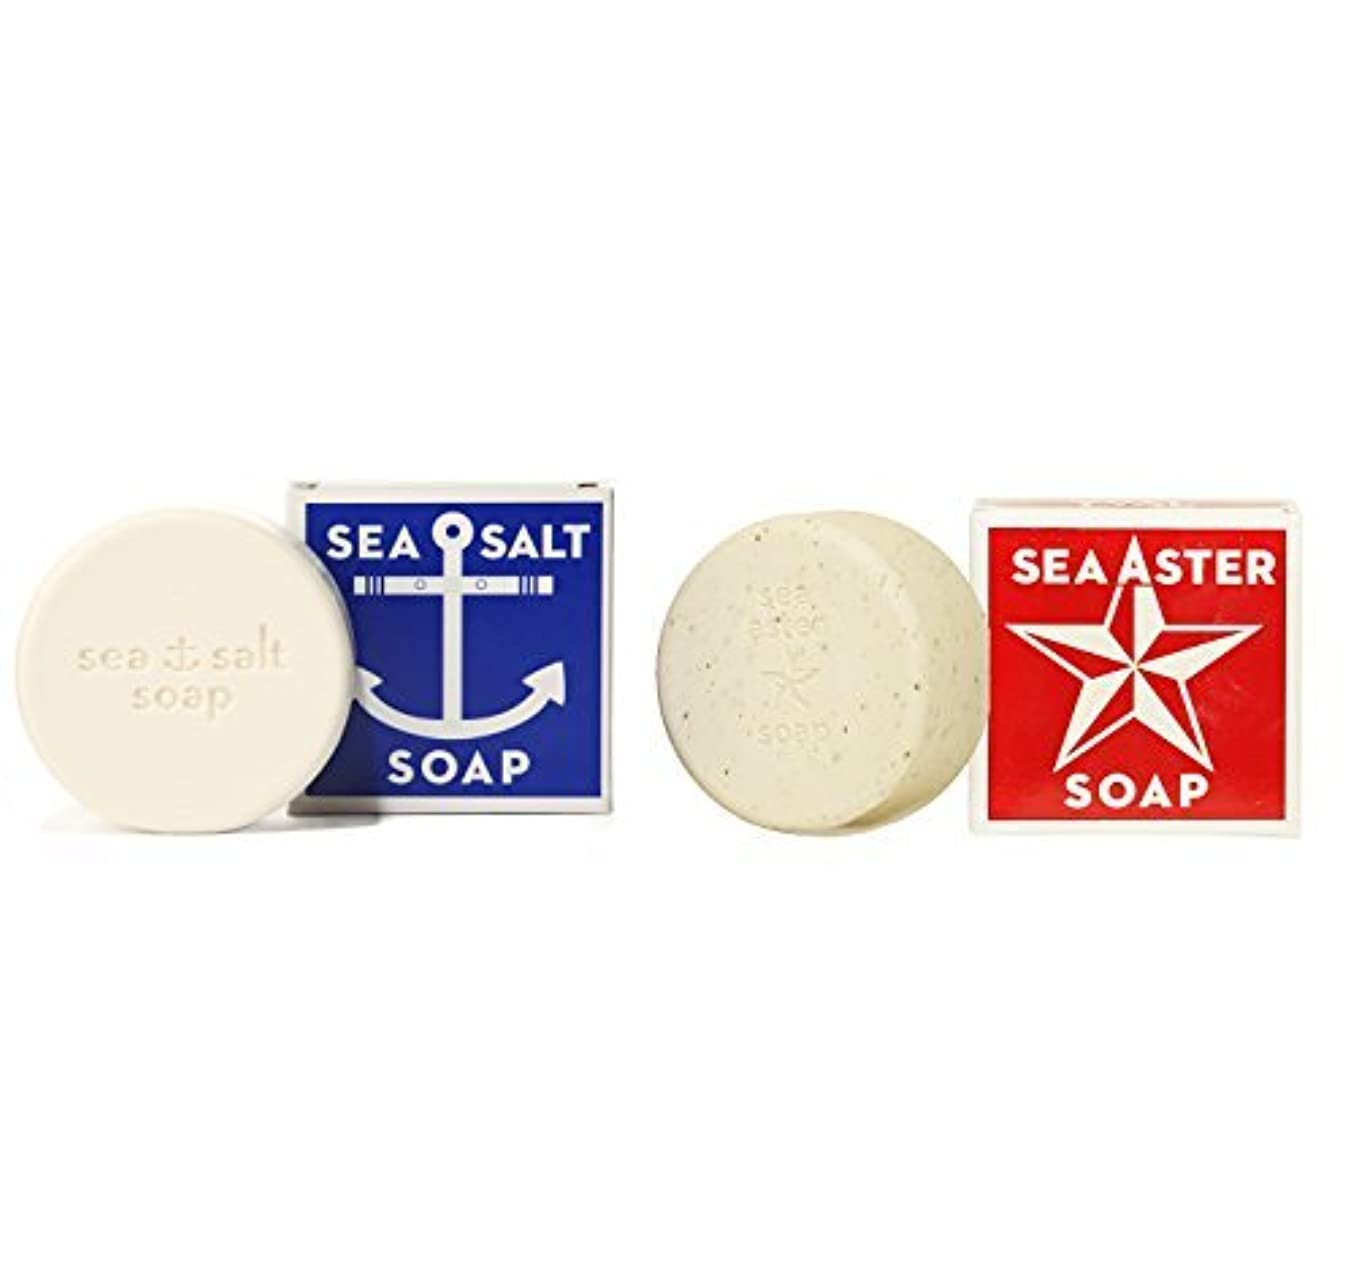 ベール広い抜本的なSwedish Dream Sea Salt + Sea Aster Soap Bar by Kala by Swedish Dream [並行輸入品]